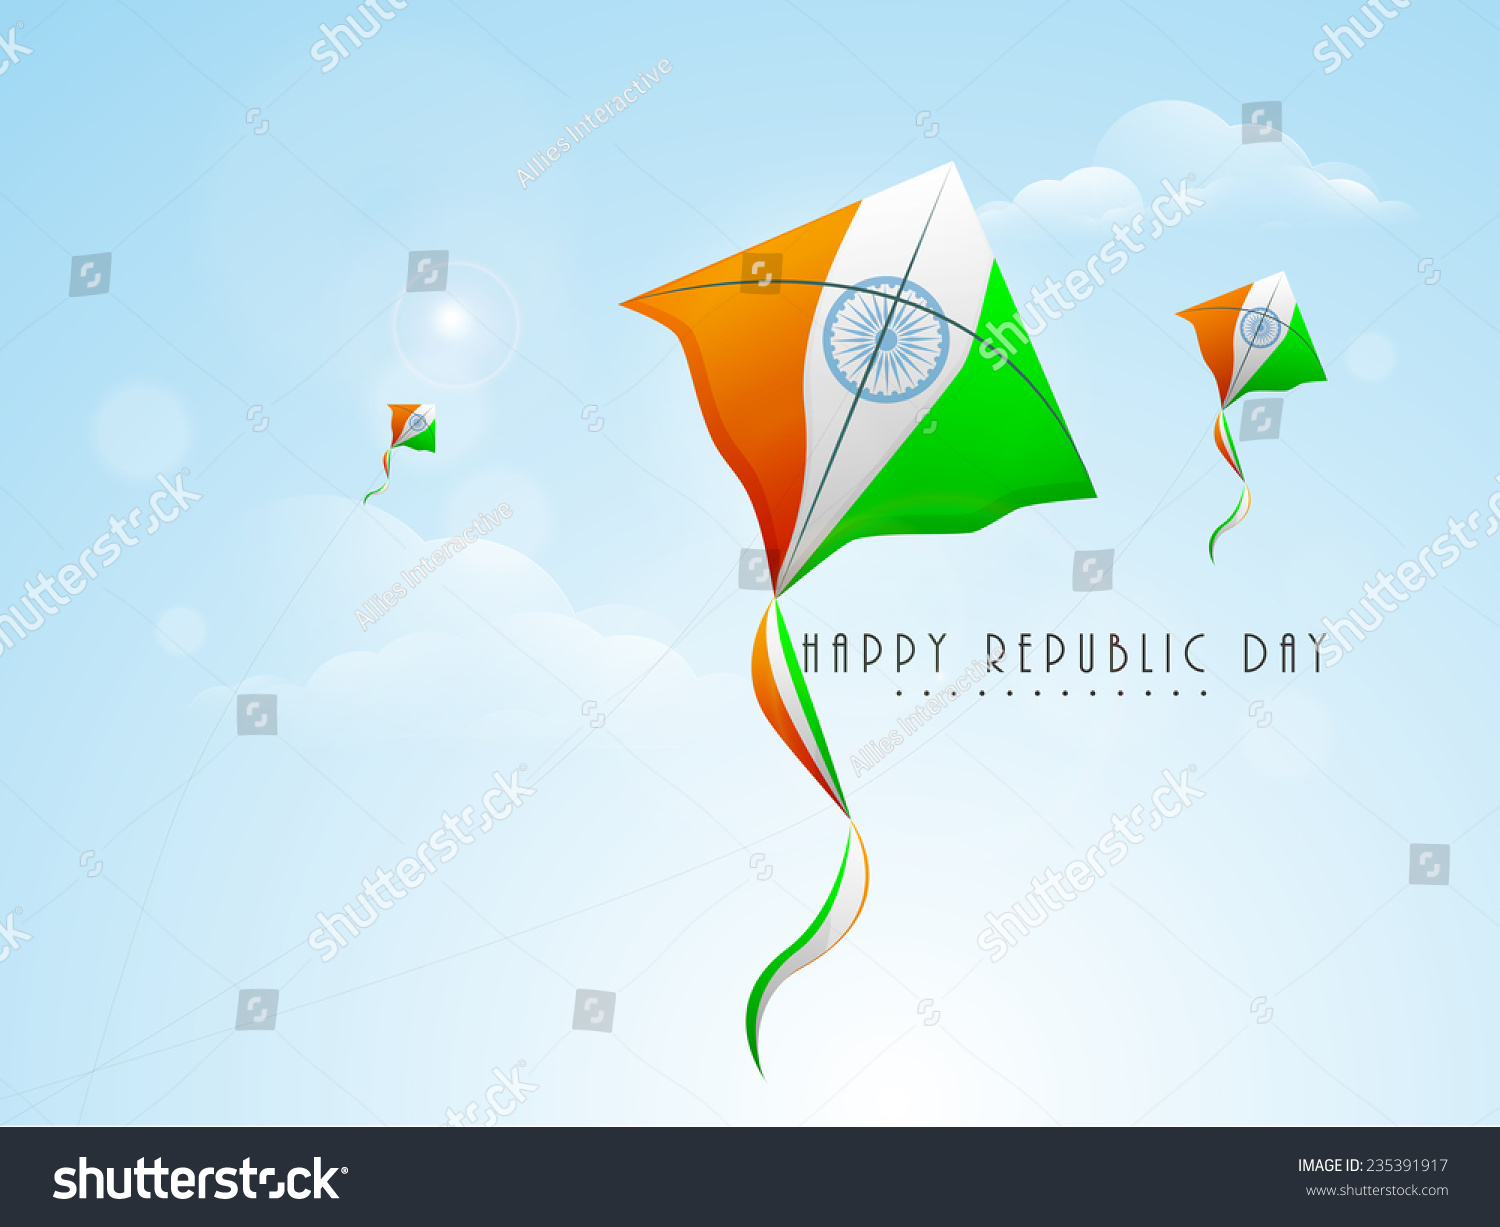 Indian Flag With Different Views: Indian Republic Day Celebration Flying Kites Stock Vector